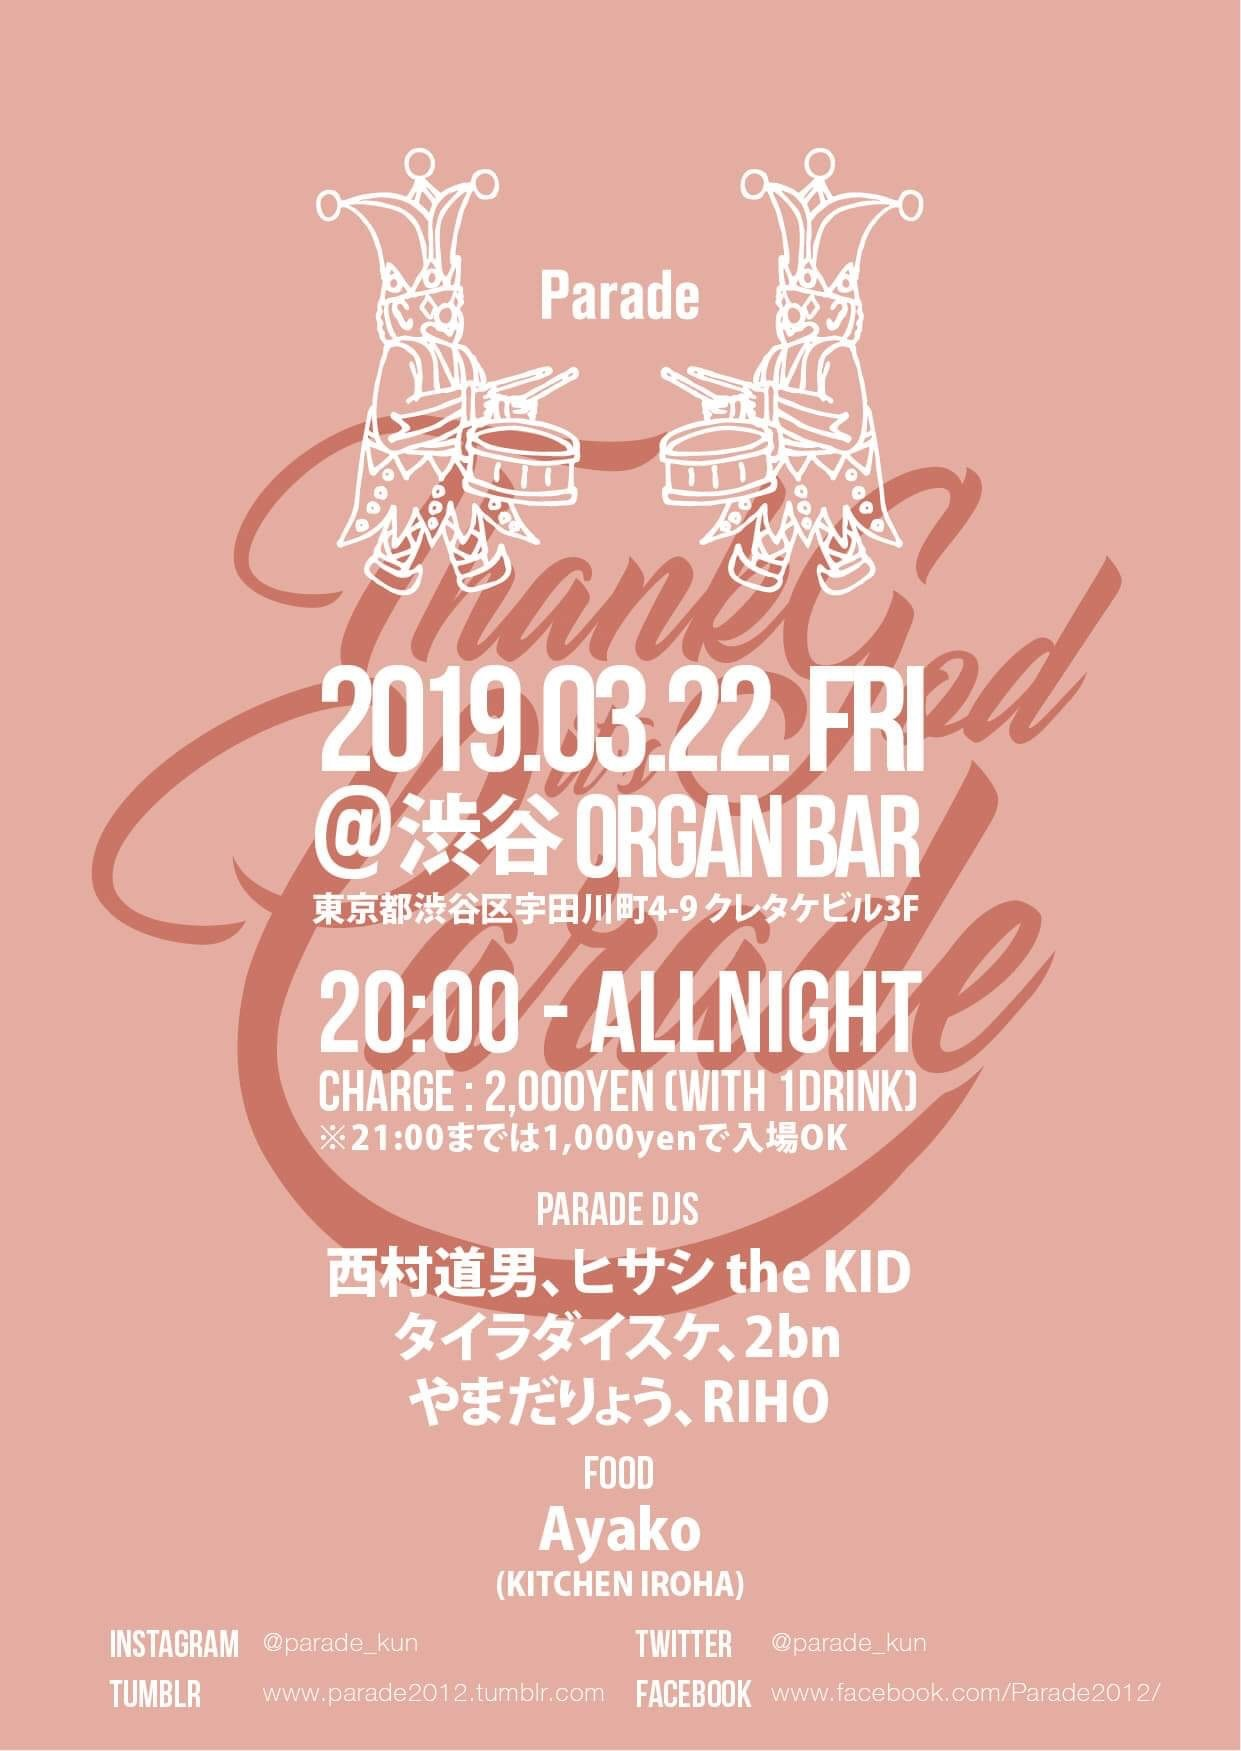 3/22 (FRI) 「Parade」@渋谷 Organ Bar_e0153779_20493652.jpeg